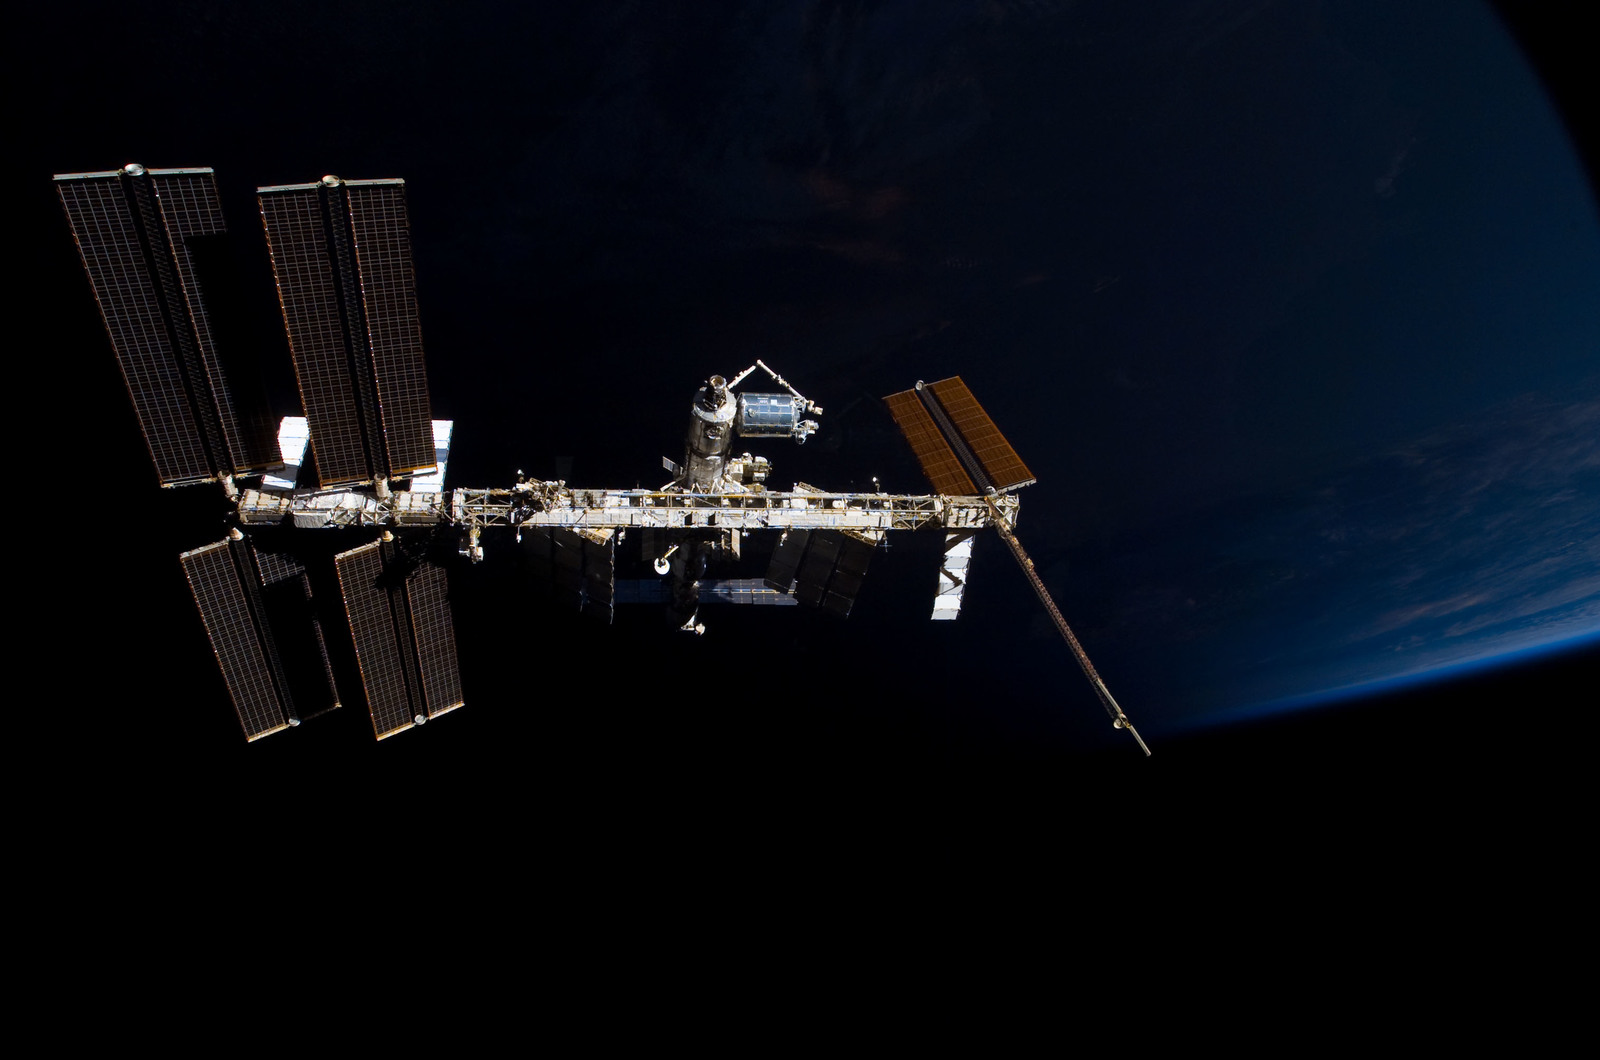 S122E009865 - STS-122 - View of ISS after STS-122 Undocking